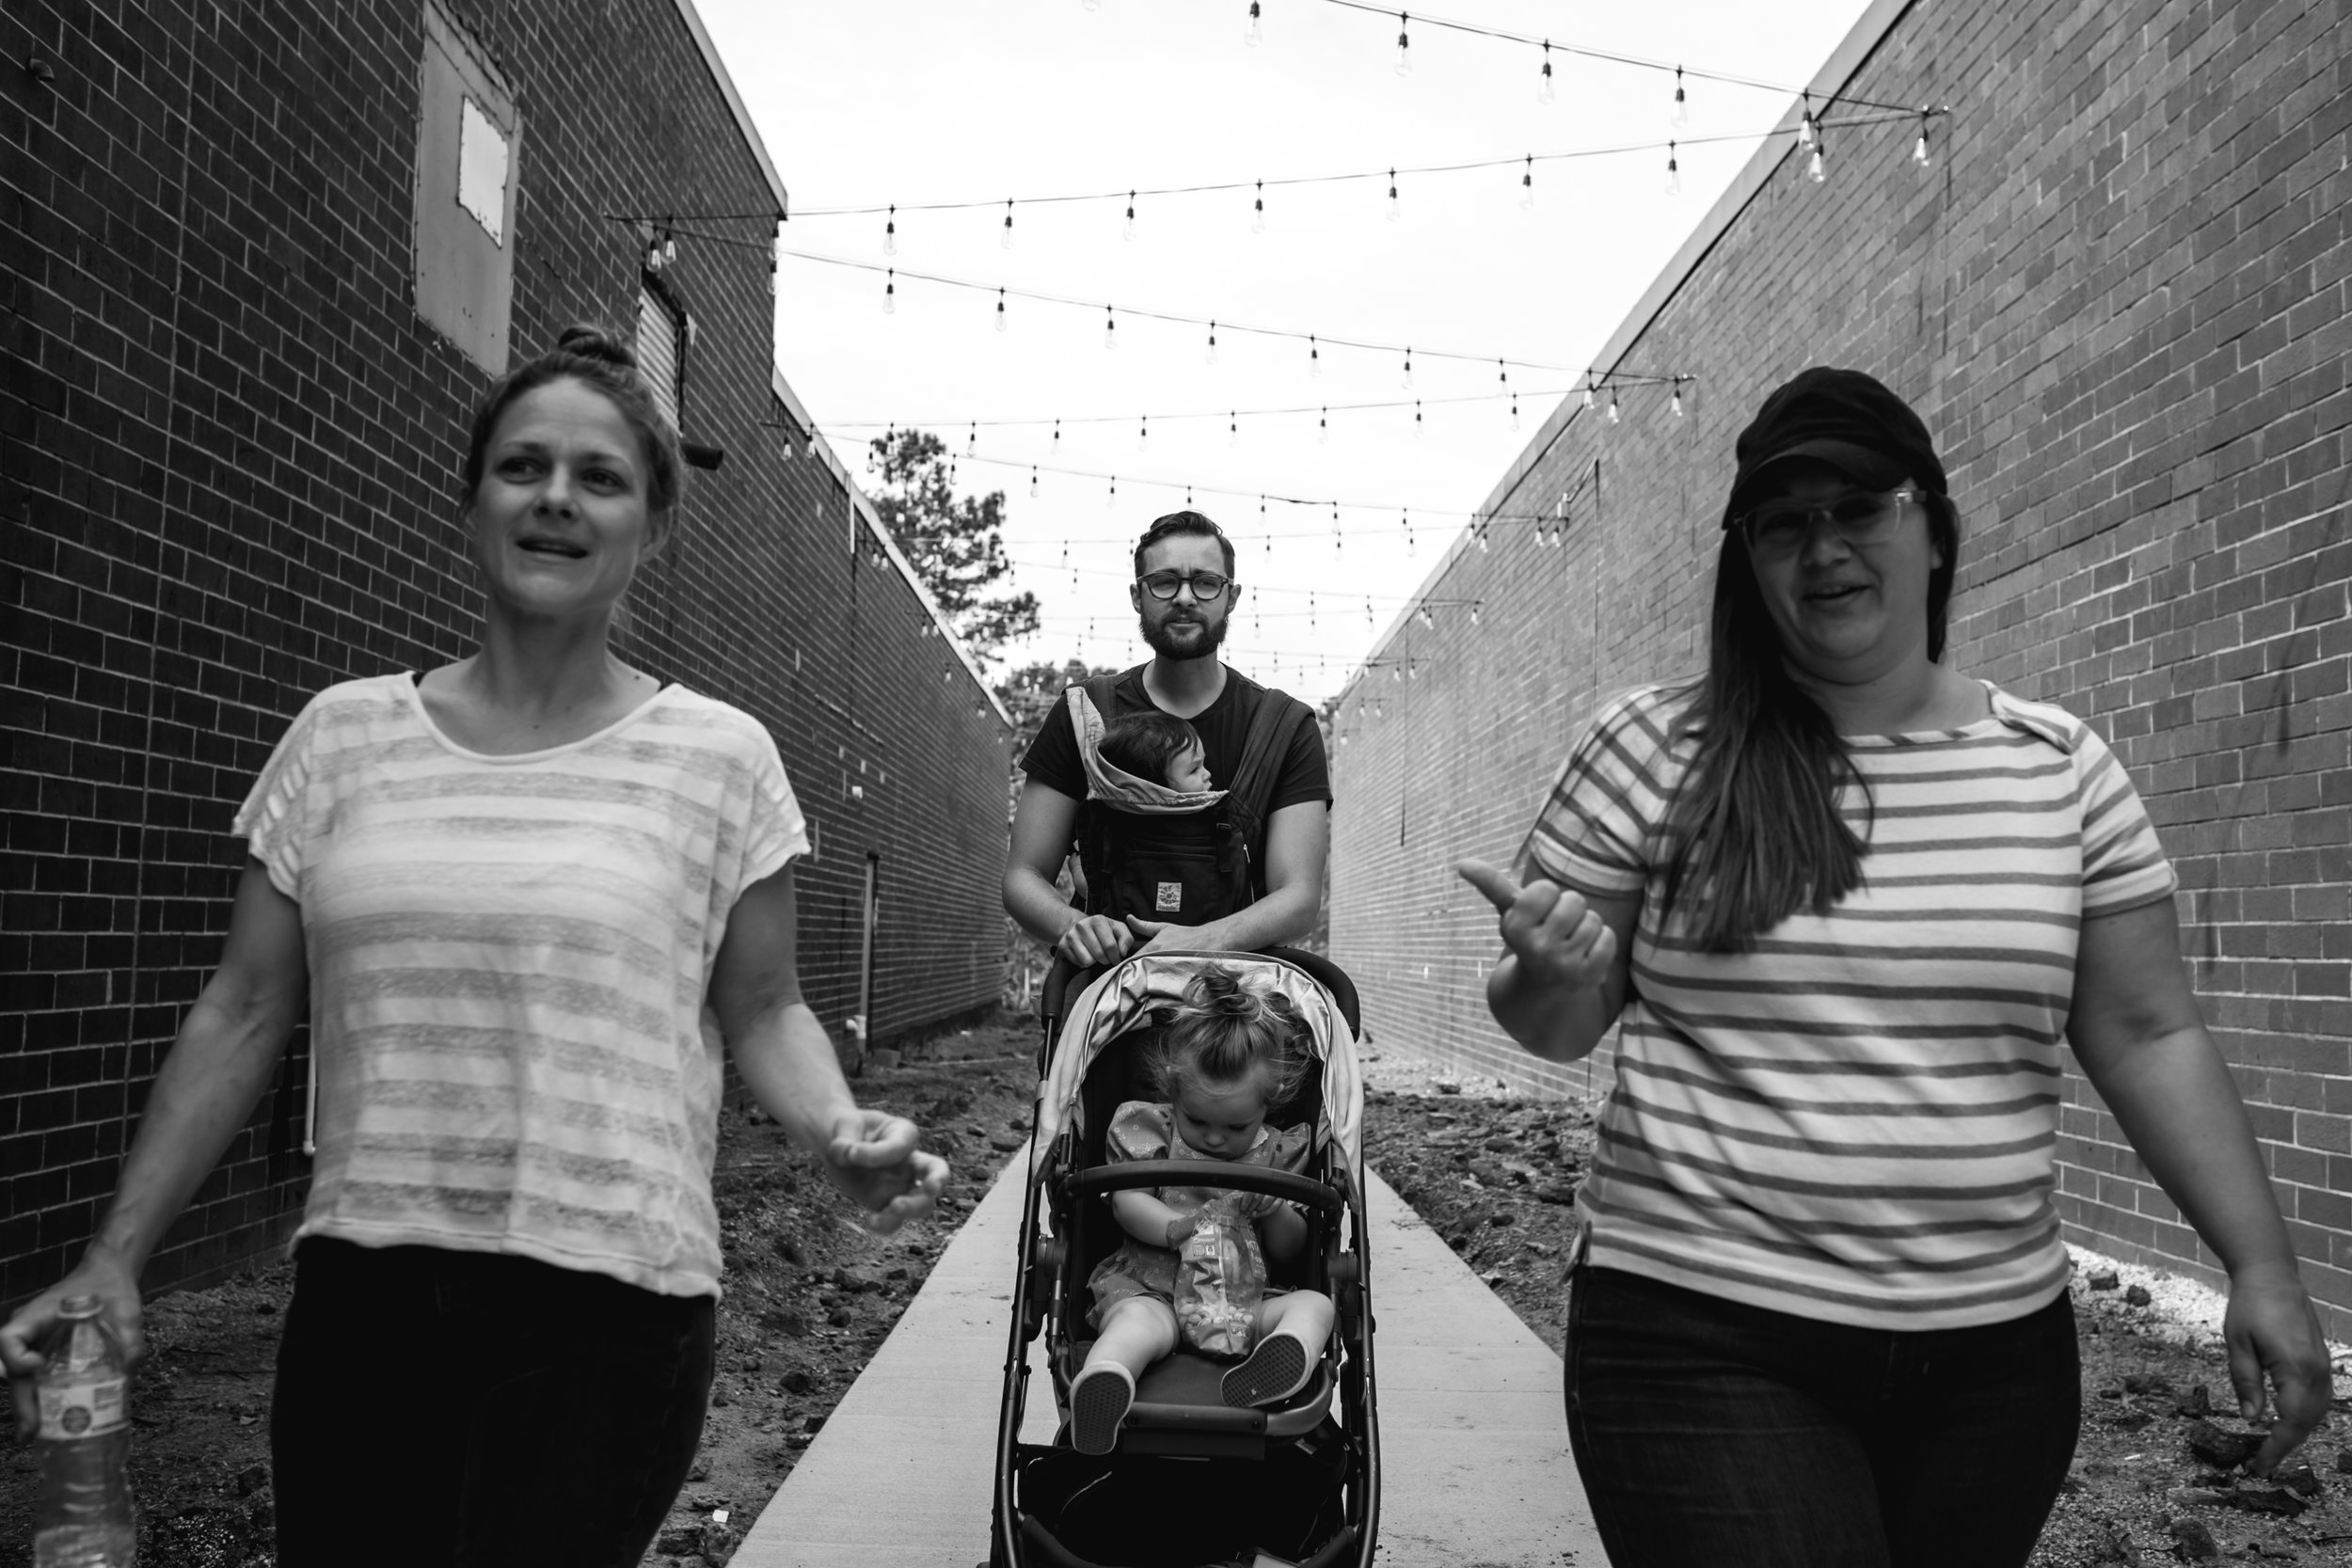 A man pushes a stroller while wearing a baby as two women with striped shirts walk on his sides